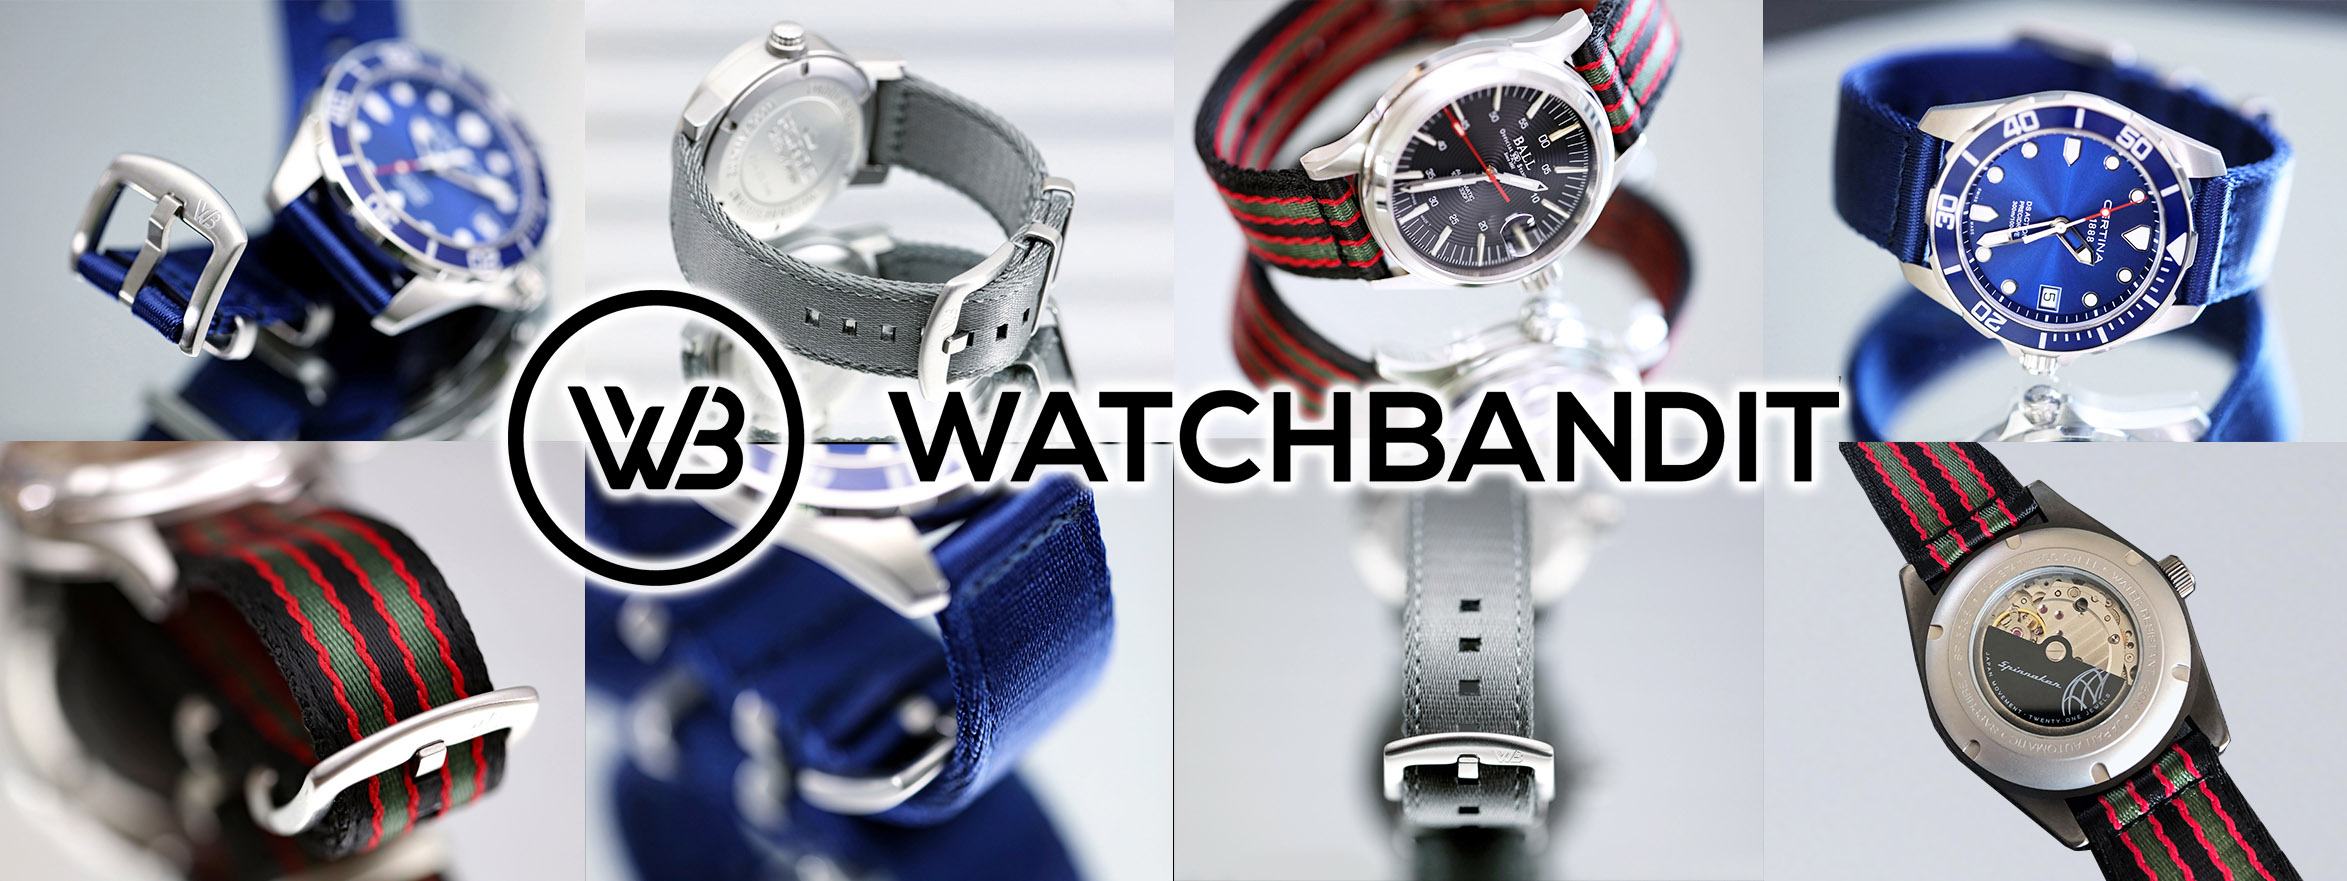 Watchbandit Original Two Piece NATO Strap collection banner